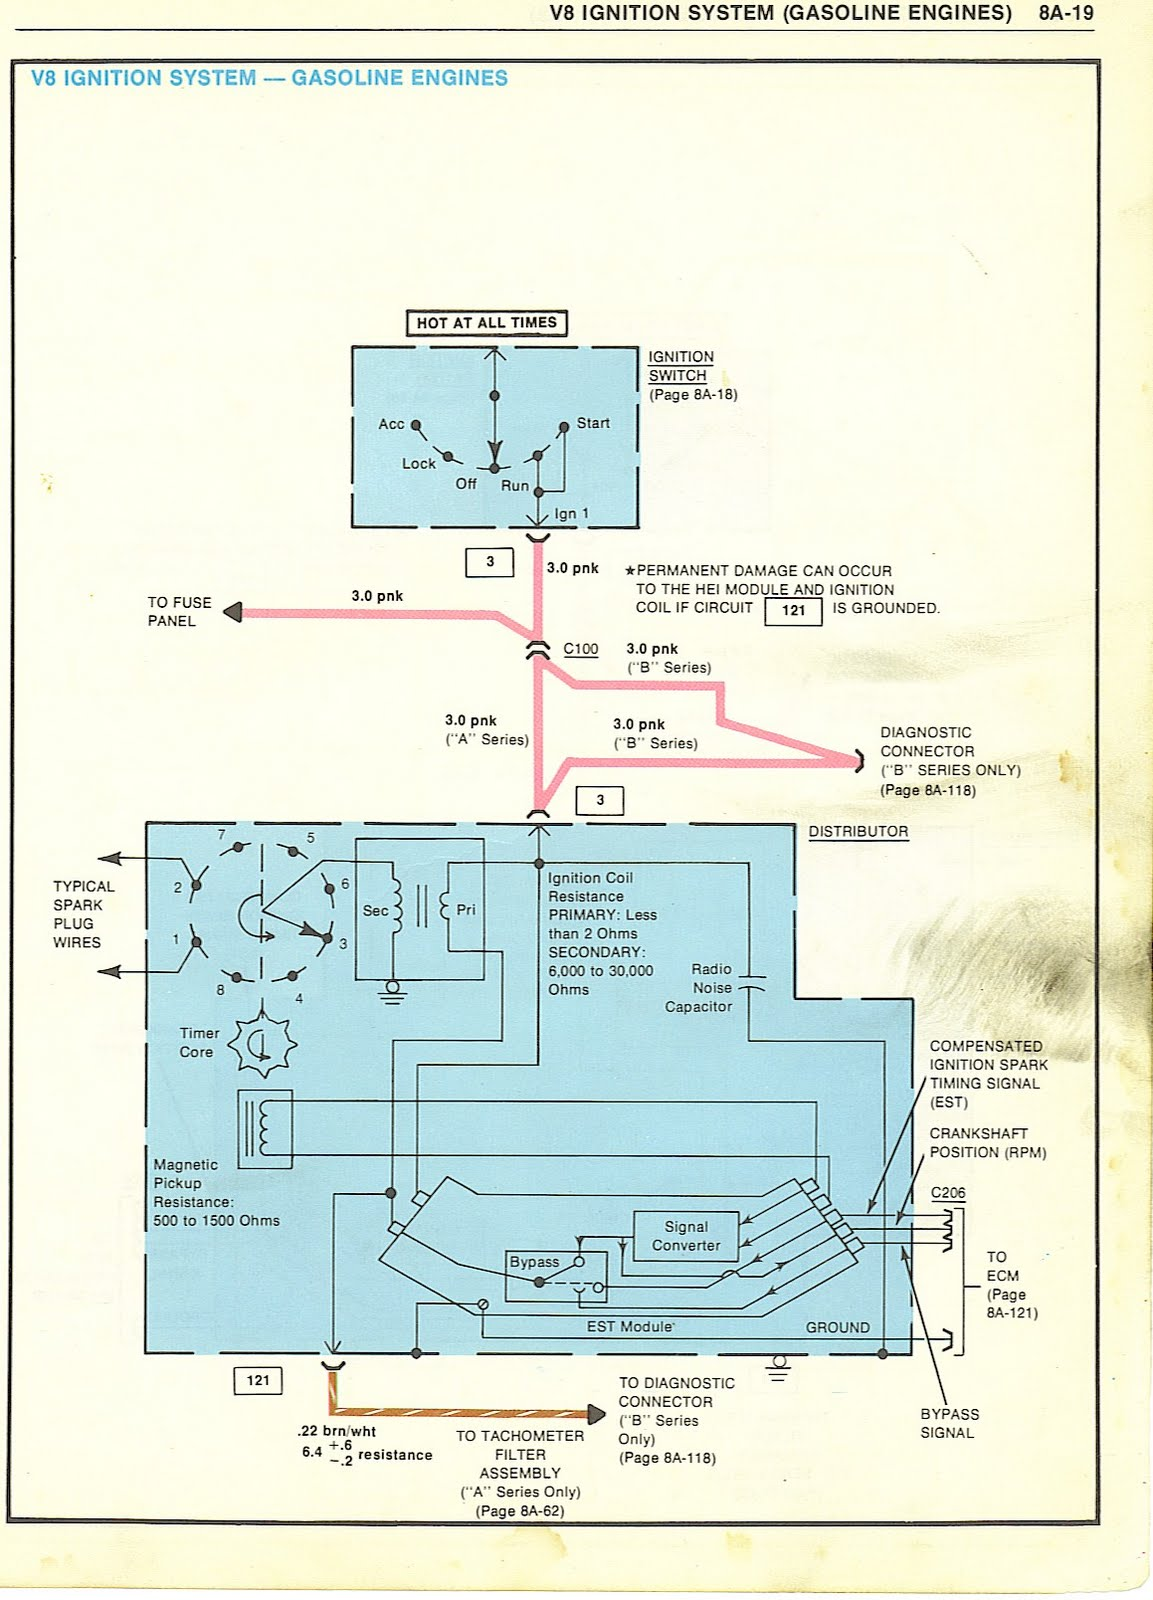 Free Auto Wiring Diagram: Chevrolet Malibu V8 Ignition